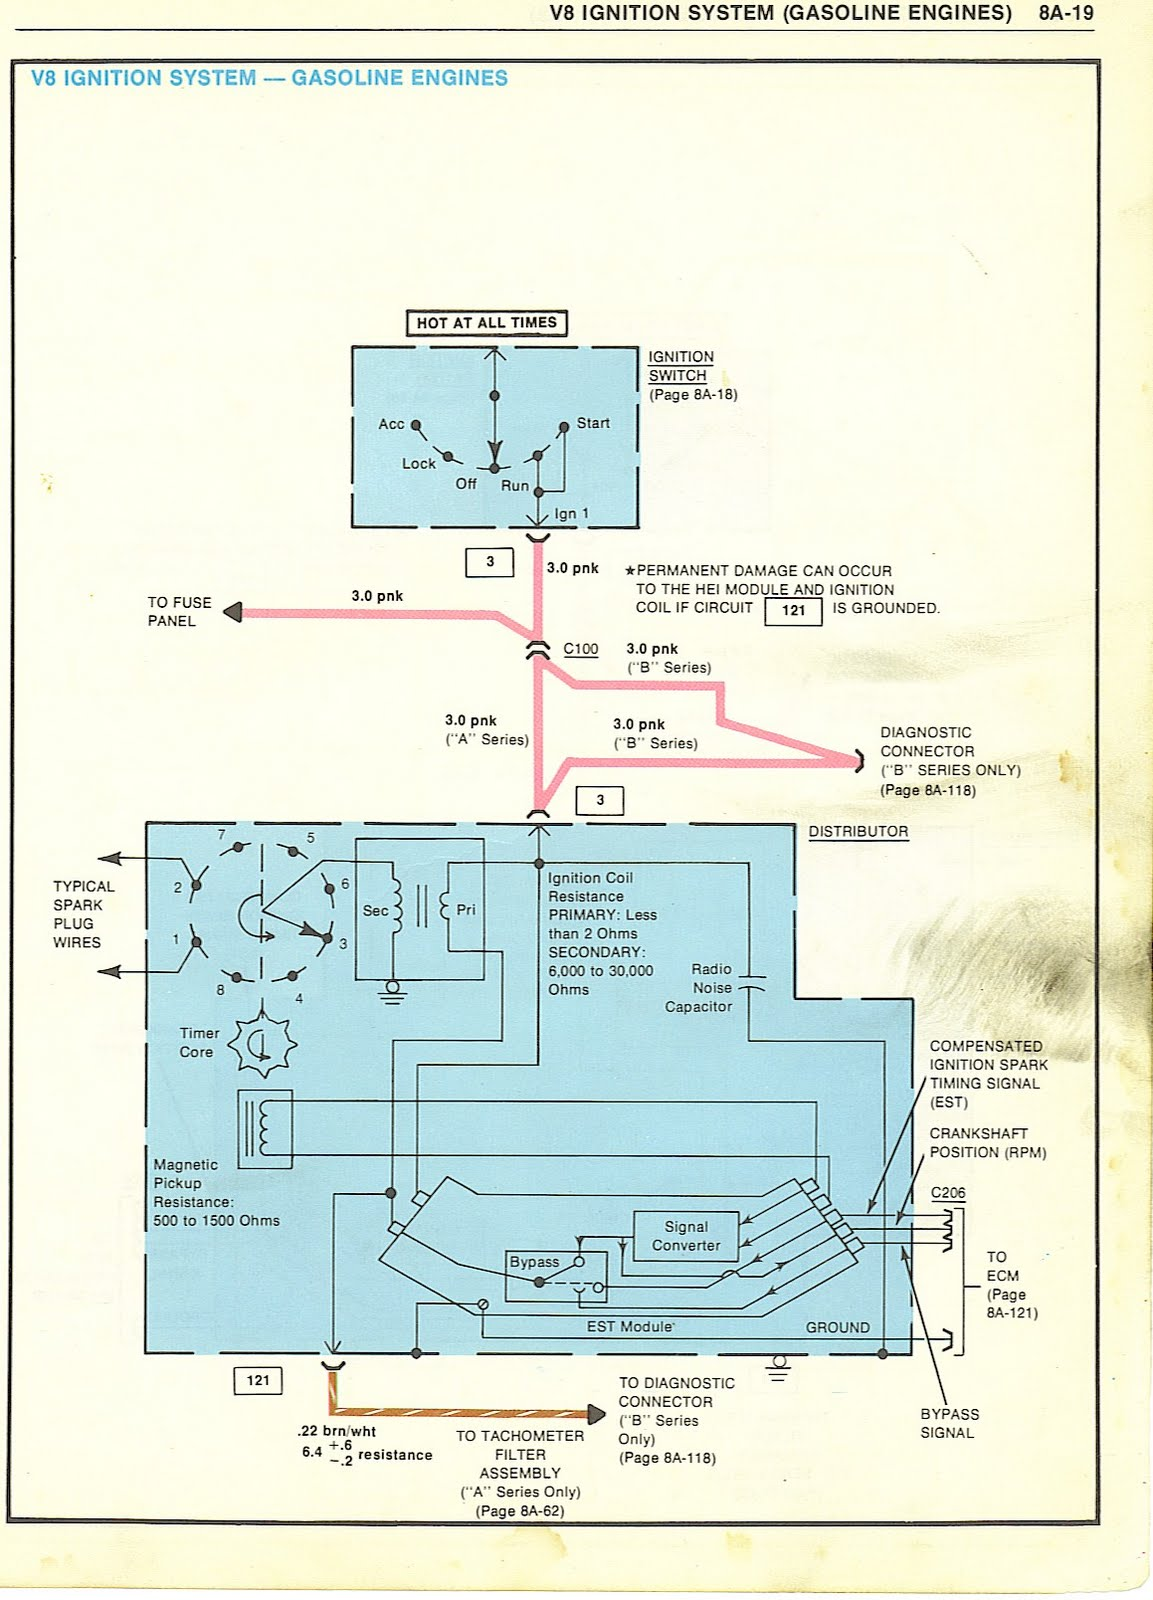 Free Auto Wiring Diagram: Chevrolet Malibu V8 Ignition